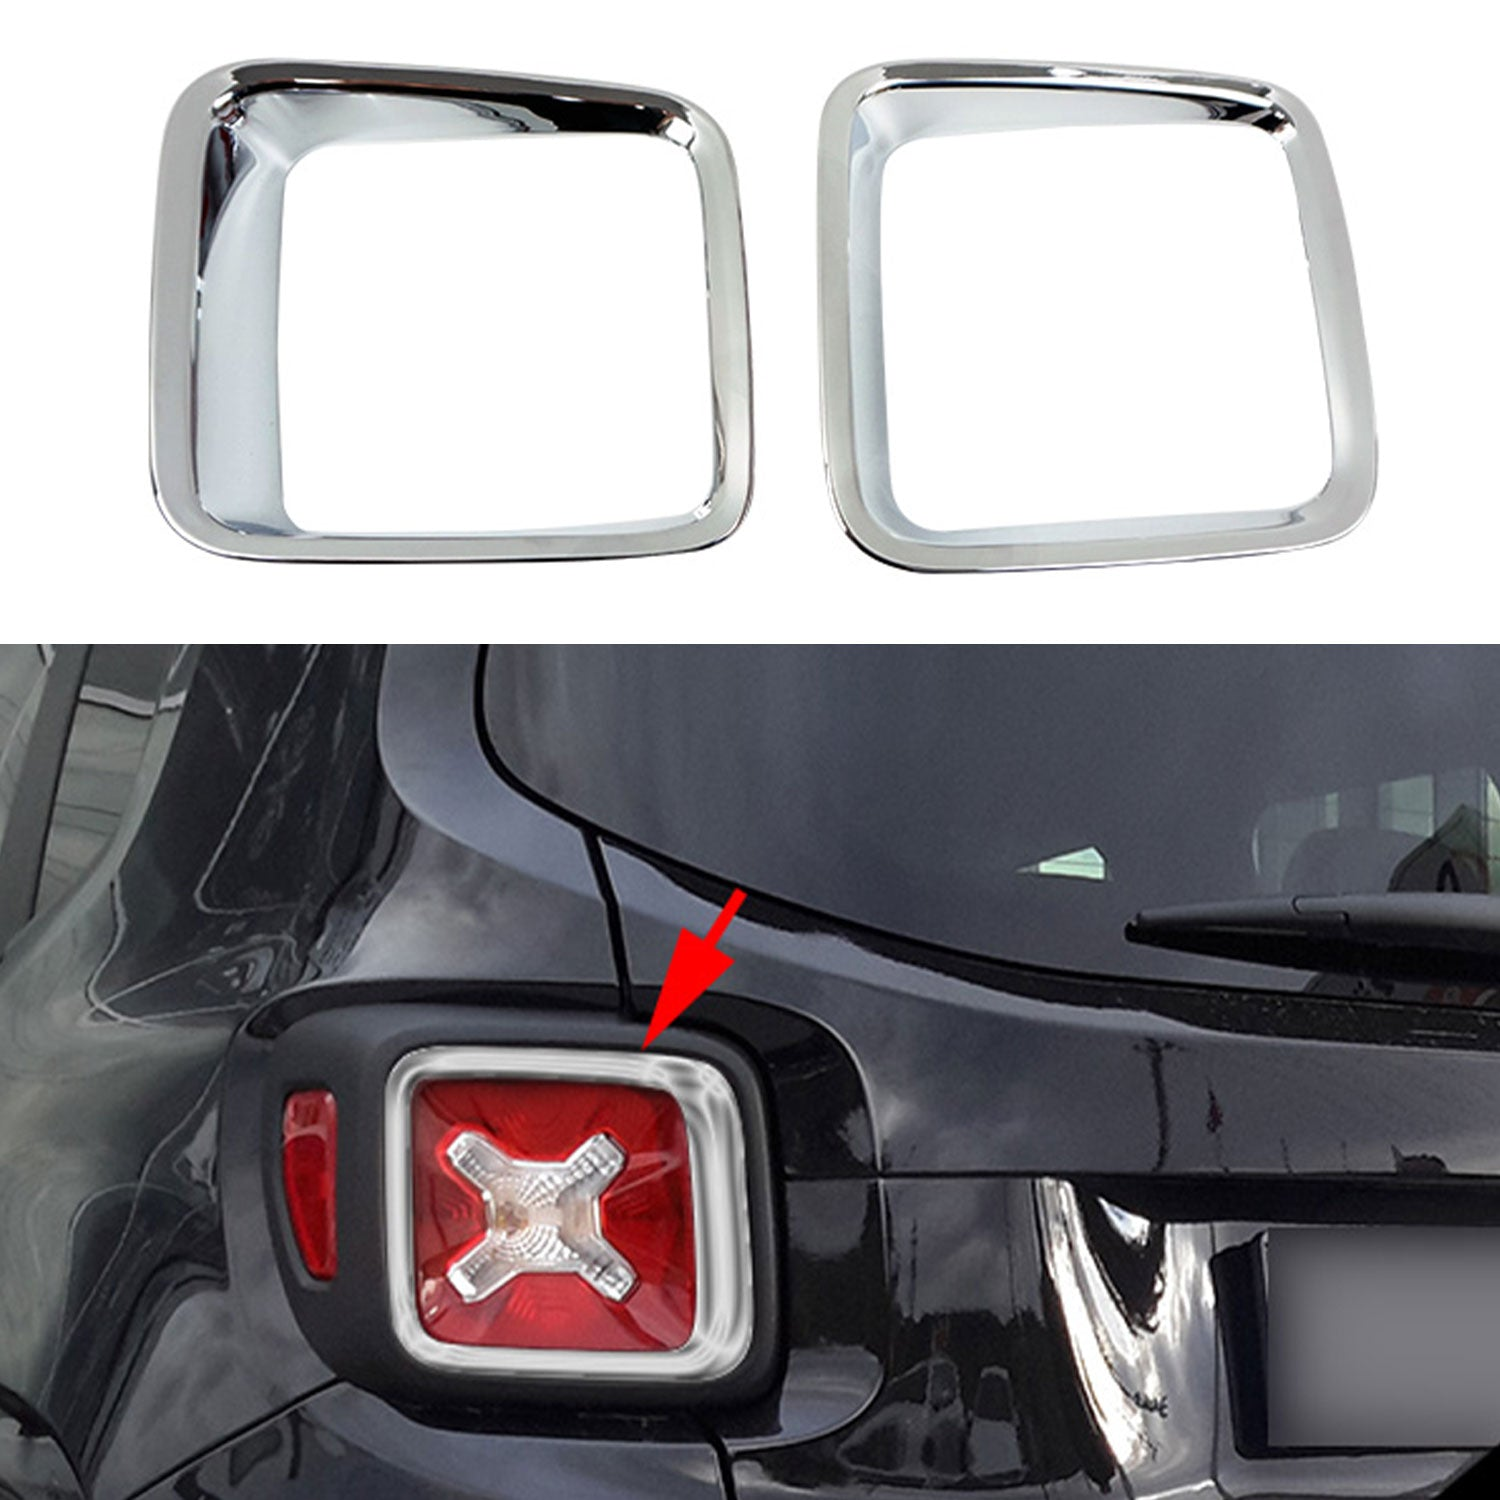 Chrome Brake Stop Light Inner Frame Trim 2 Pcs for Jeep Renegade 2015-2020